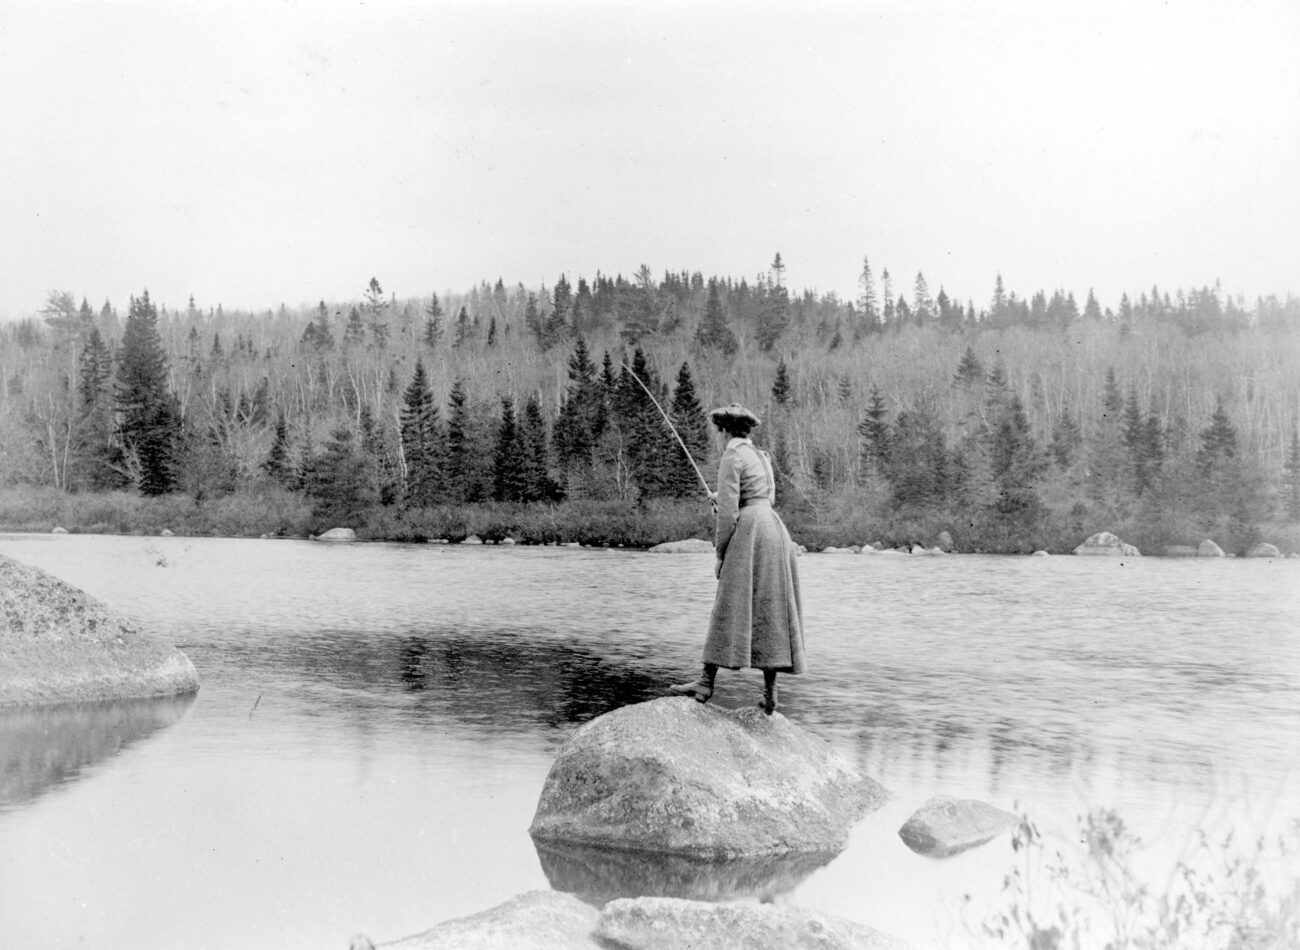 Fly fishing in Nova Scotia circa 1900